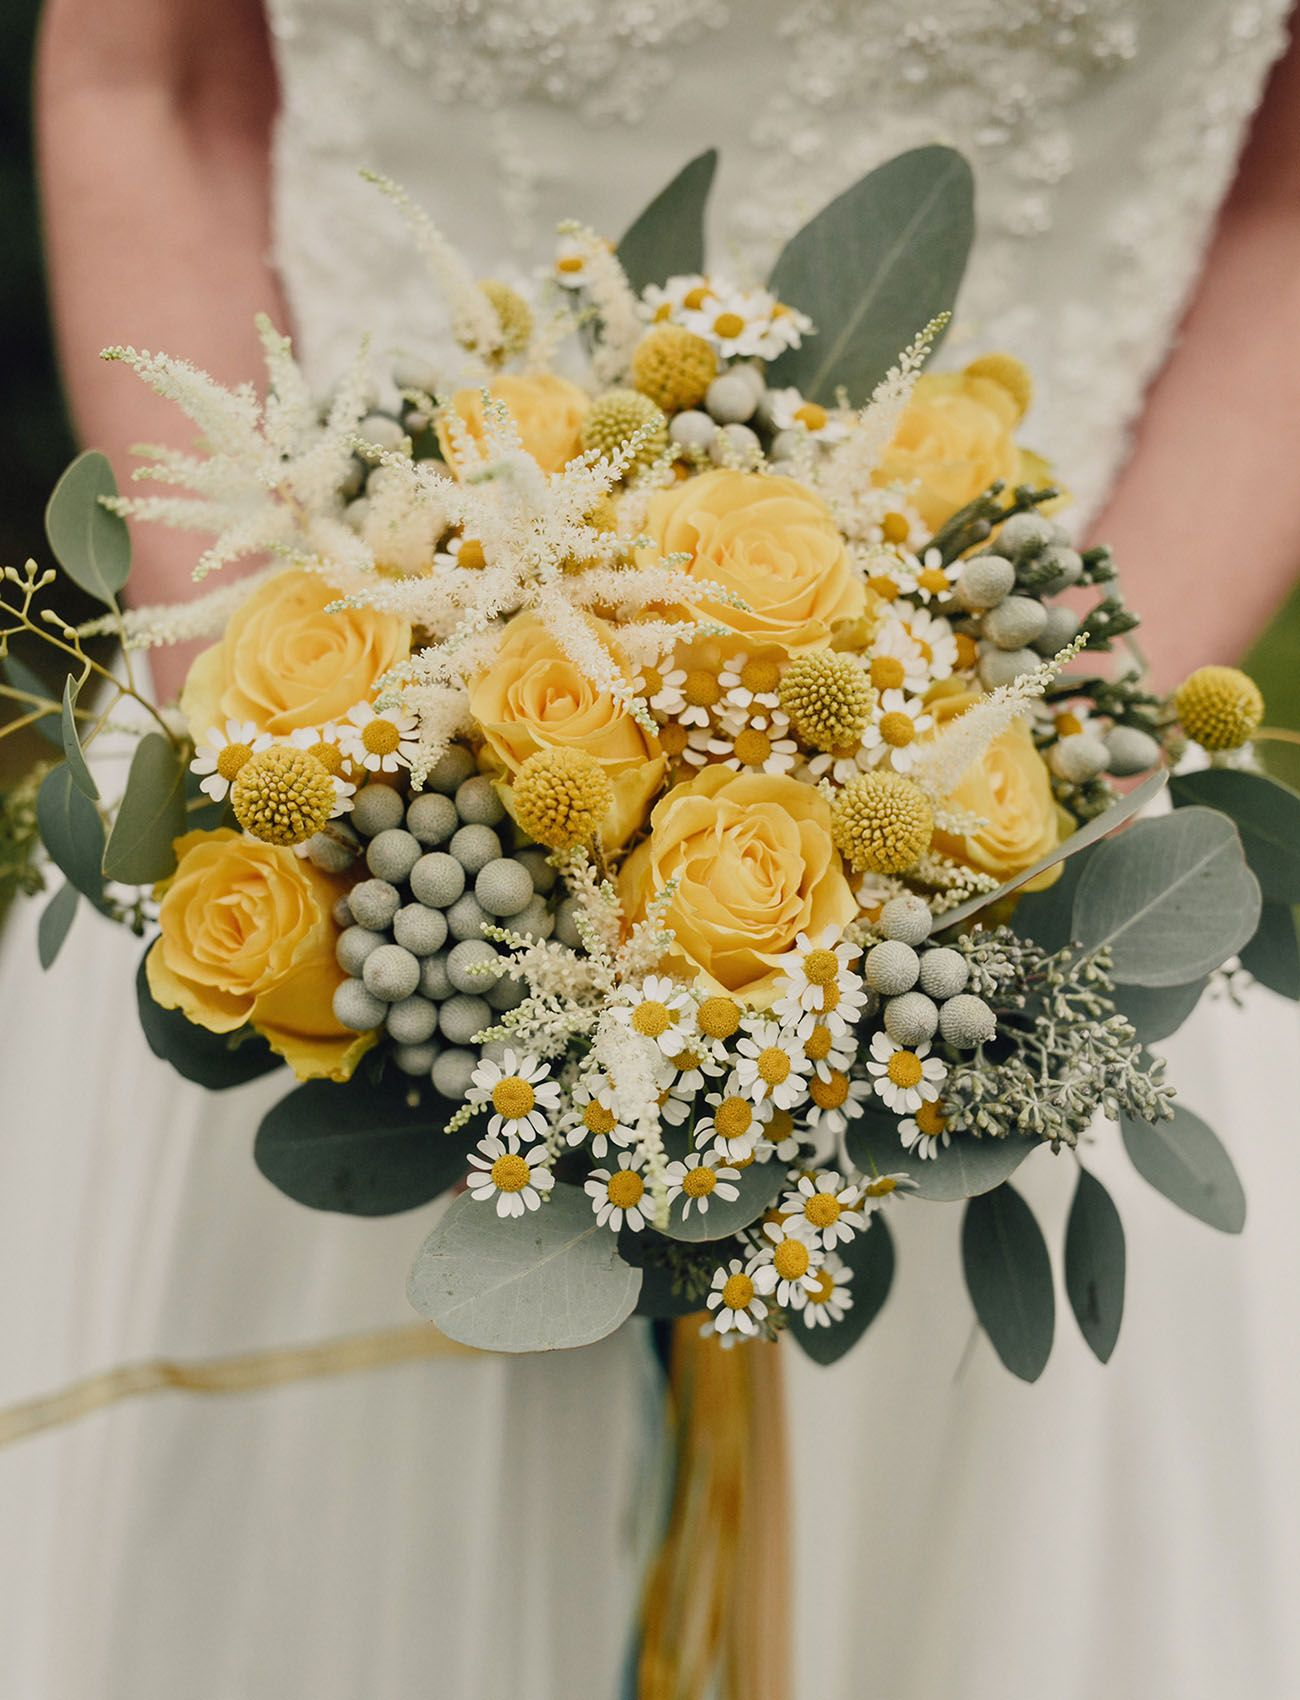 Diy rustic camping wedding debbie anthony rose wedding and flowers diy rustic camping wedding debbie anthony daisies bouquetflower izmirmasajfo